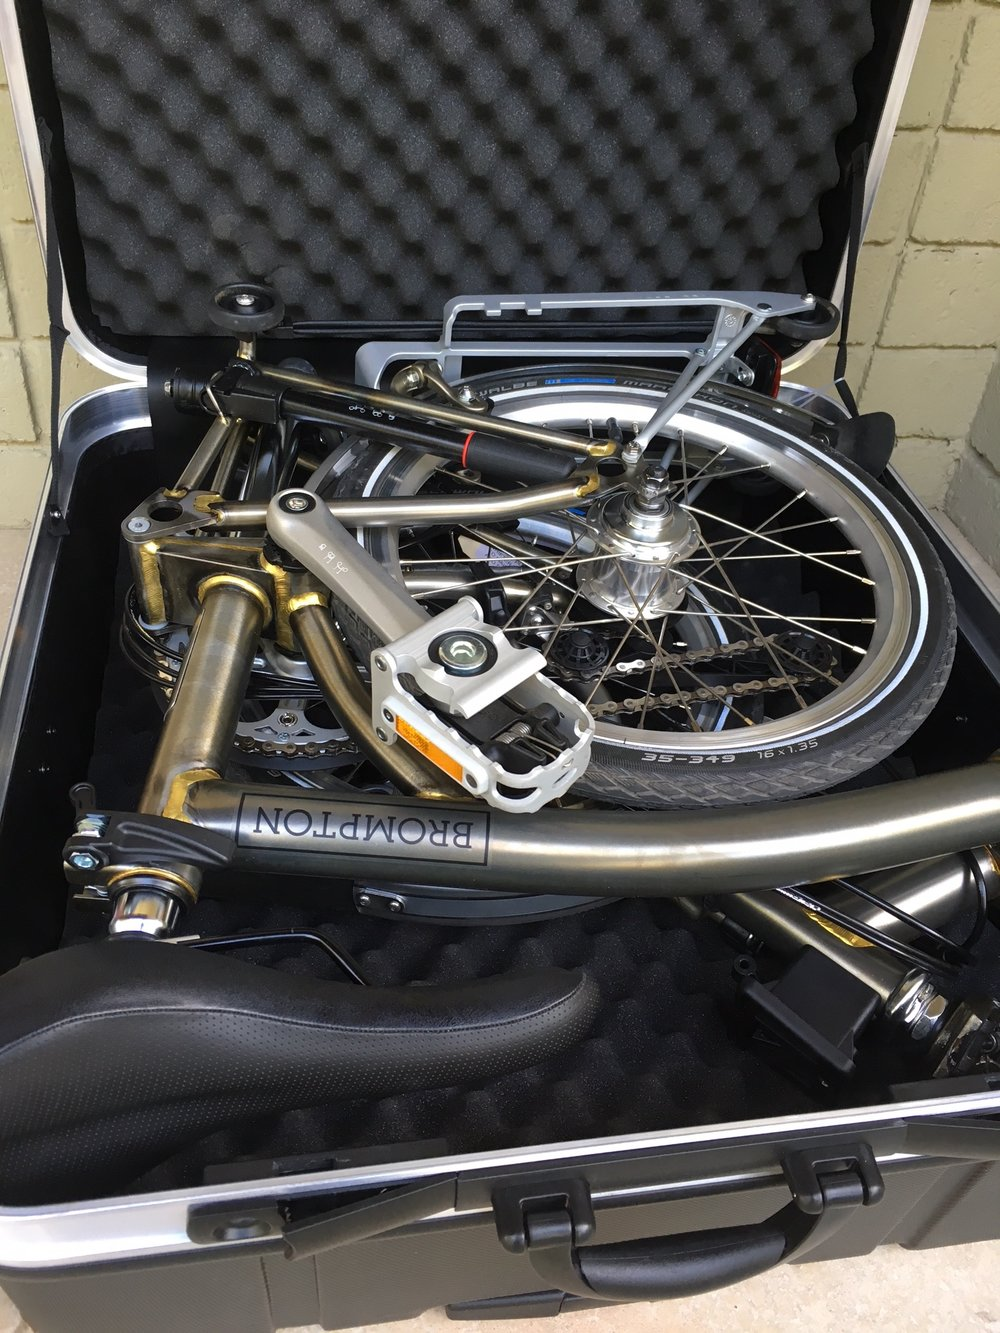 Among many aftermarket options is this excellent, wheeled hard case.